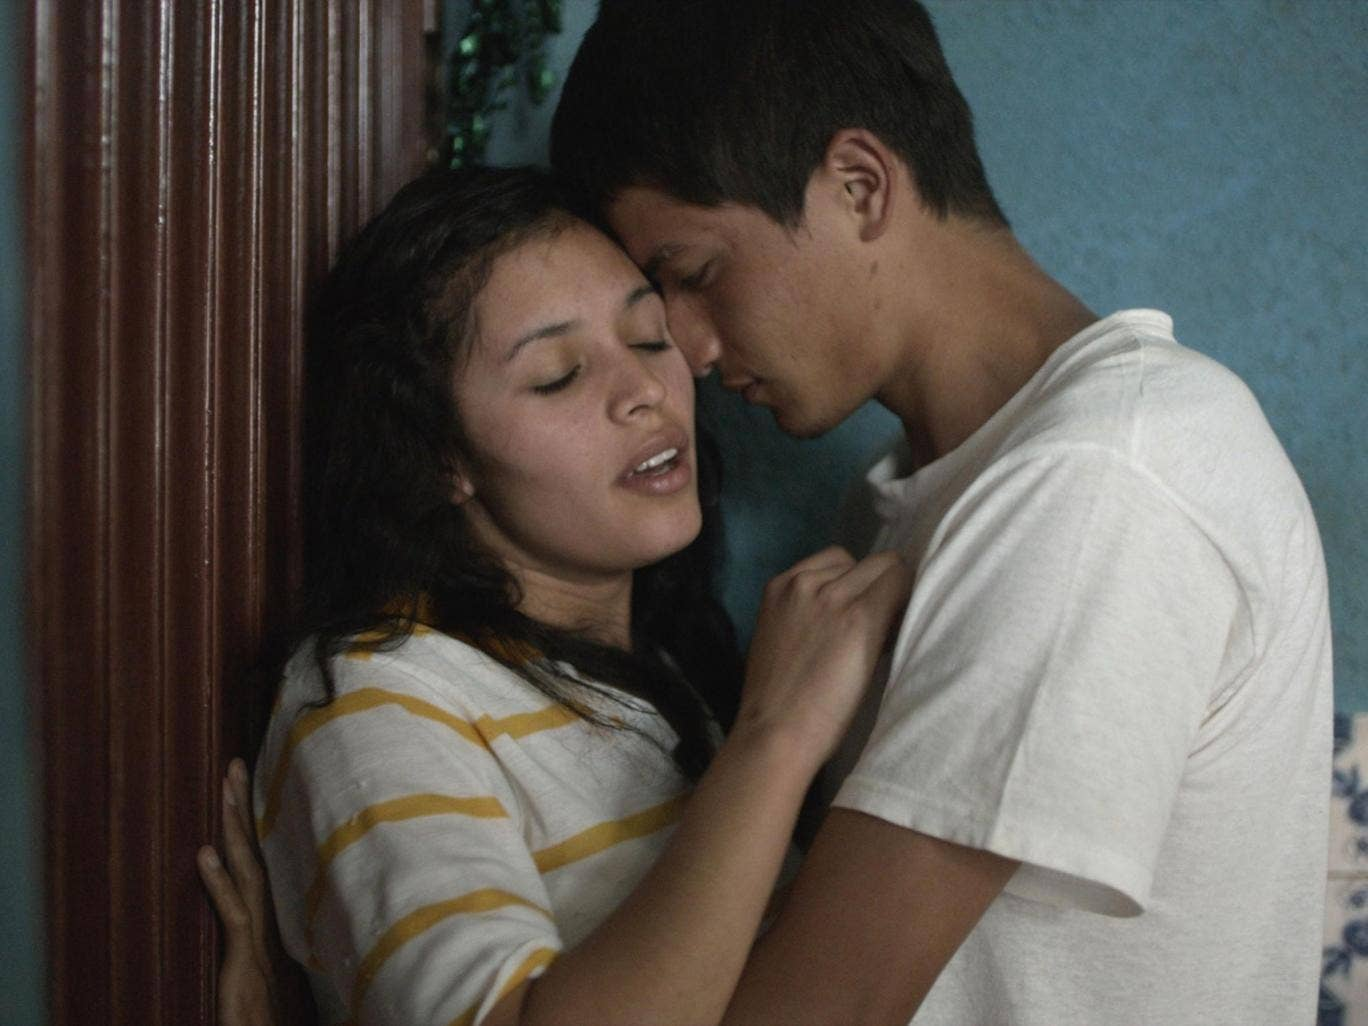 Linda González and Armando Espitia in 'Heli'